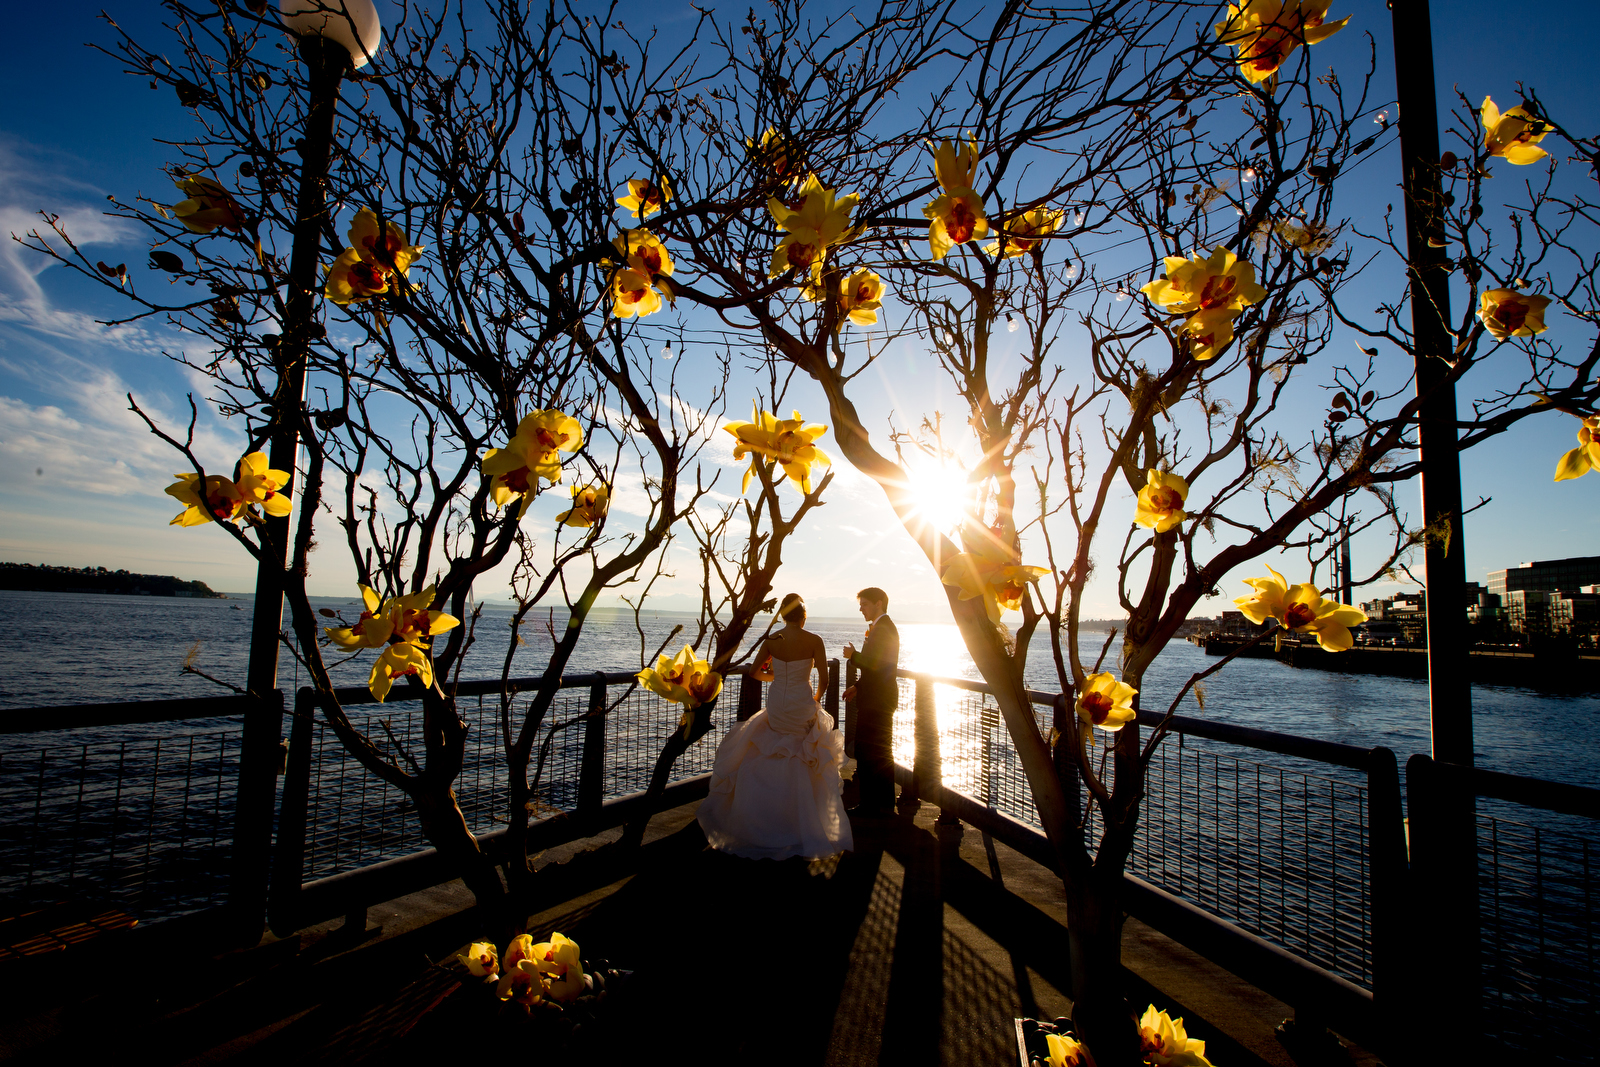 The bride & groom are silhouetted as they watch the beautiful sunset on the Seattle waterfront during their wedding at the Seattle Aquarium. (Wedding Photography by Scott Eklund - Red Box Pictures)